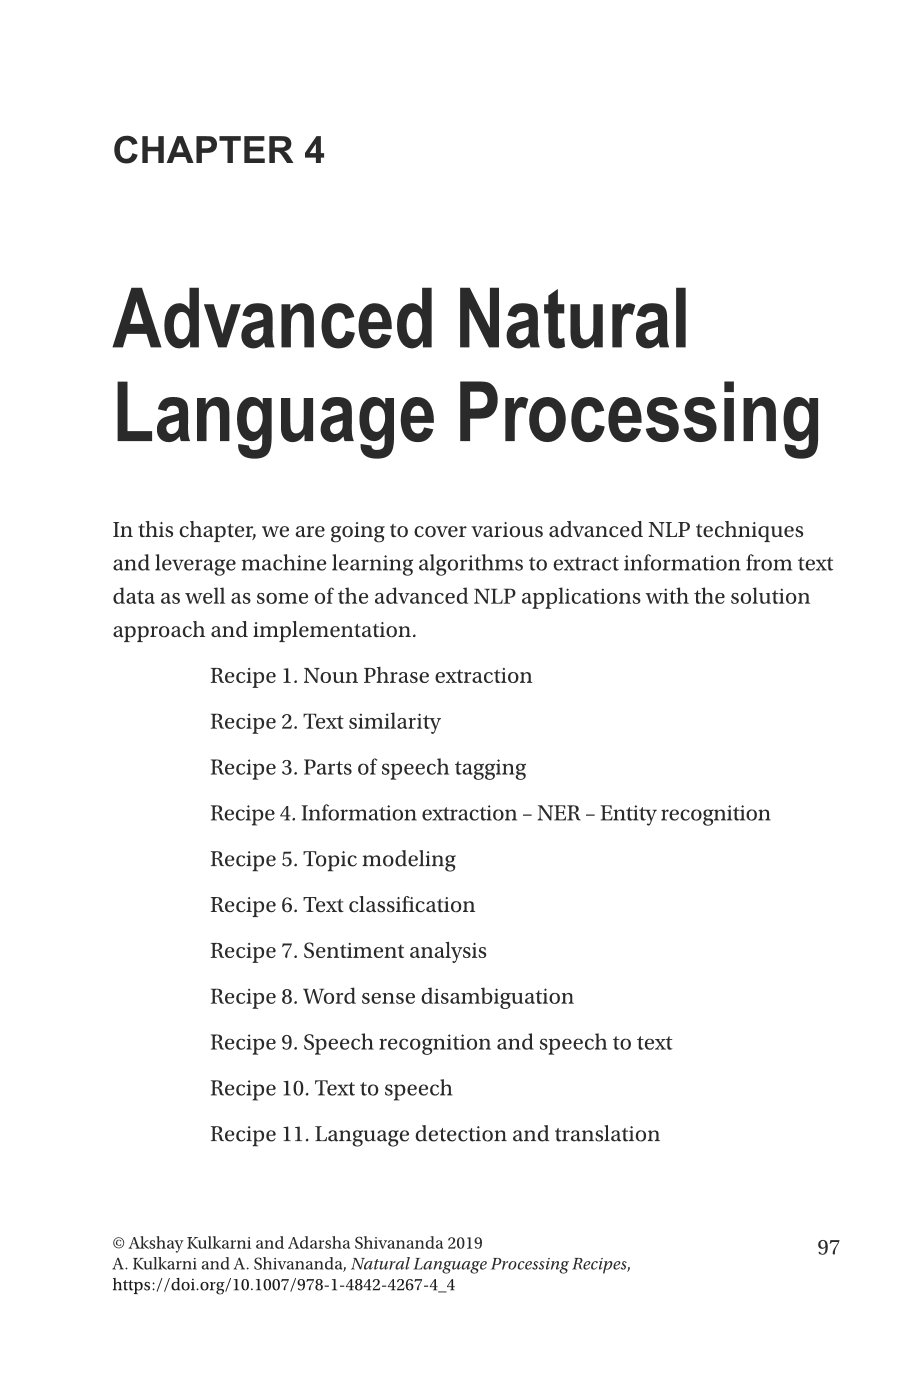 Natural Language Processing Recipes: Unlocking Text Data with Machine Learning and Deep Learning using Python-preview-3